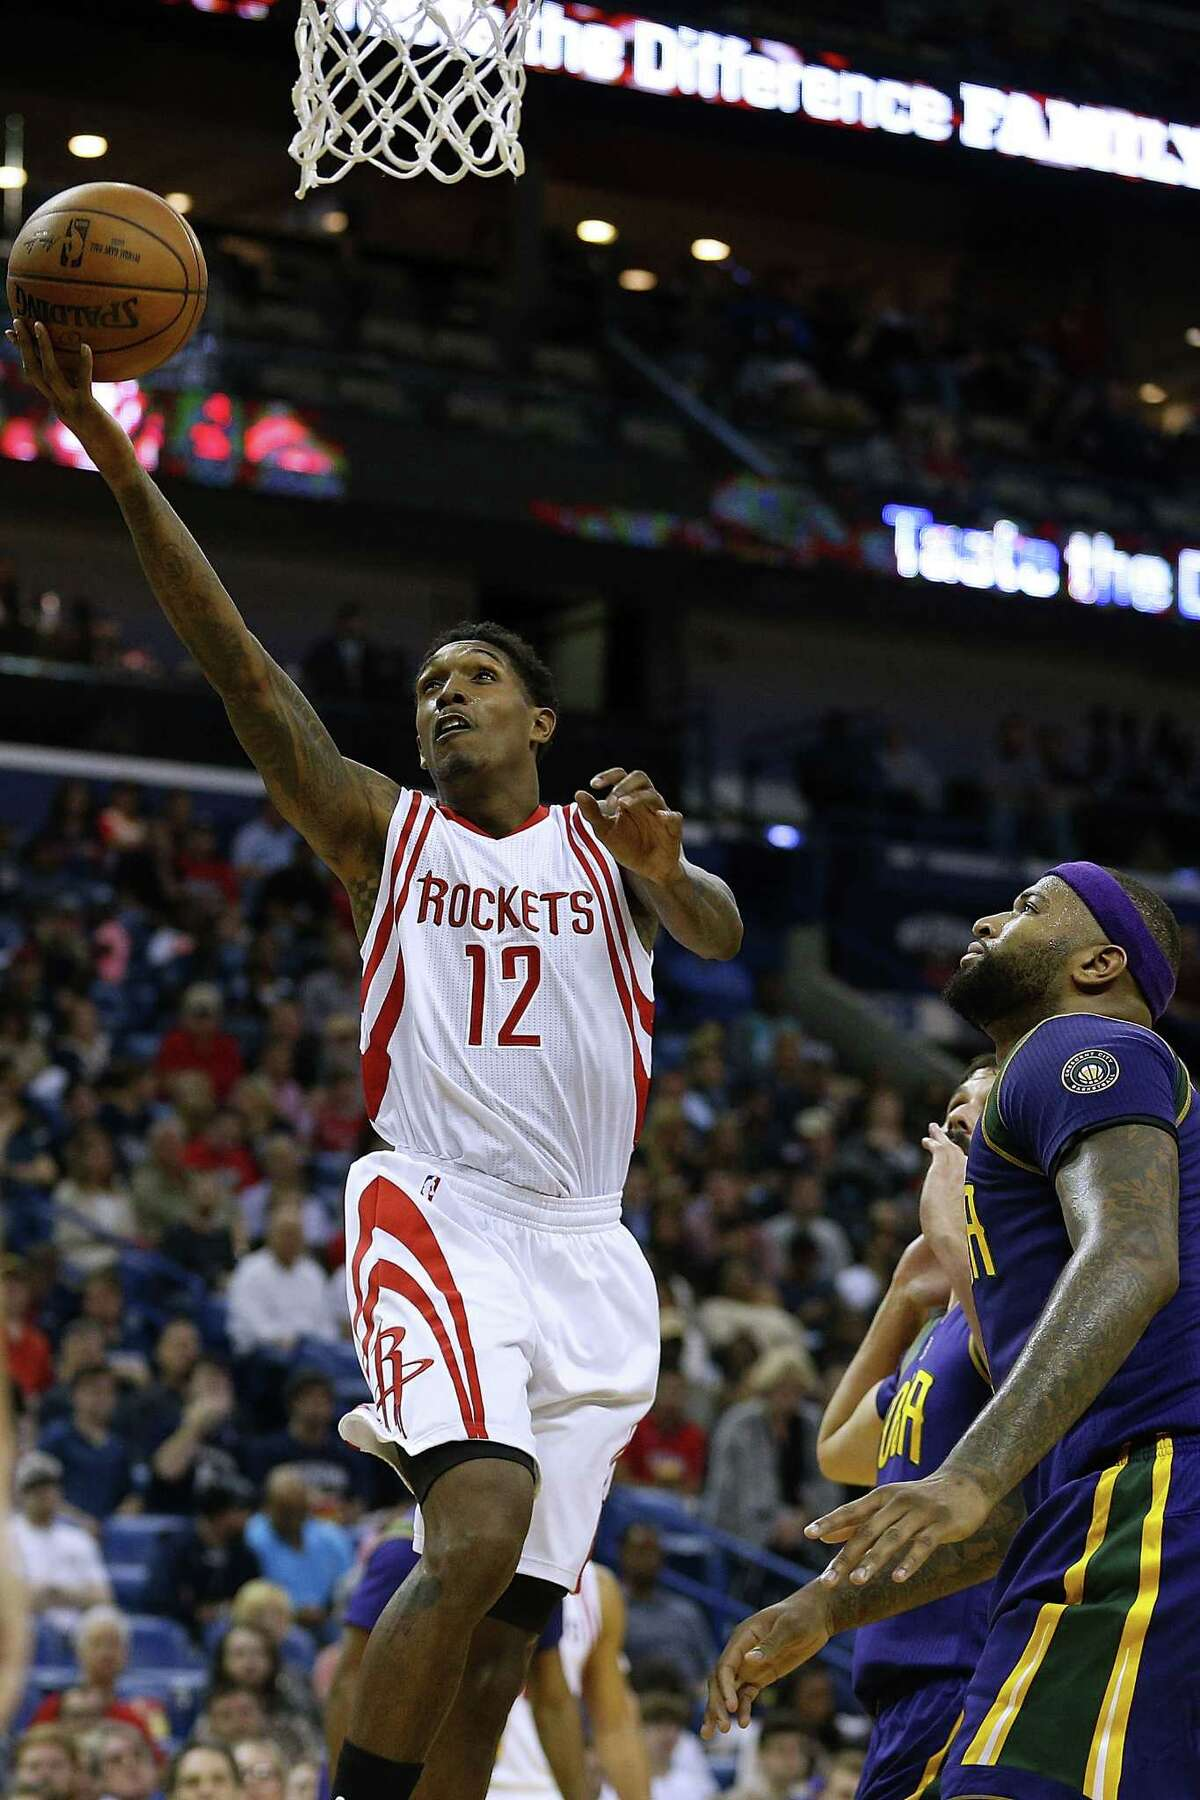 The Lakers send Lou Williams to the Rockets for Corey Brewer and a future first-round pick Rockets grade: A Corey Brewer, although a great guy and teammate, had played himself out of a rotation spot. Lou Williams gives the Rockets even more firepower off the bench and makes then an even more legitimate contender than they already were. Losing a first-round pick hurts, but it was going to be a pick late in the first round anyway. Lakers grade: C The Lakers need their first-round pick to be in the top three or else they have to give it up to the 76ers. So, the goal for the Lakers the rest of this season is to lose games and keep that pick. Lou Williams wasn't helping them lose games. So, see ya, Lou.